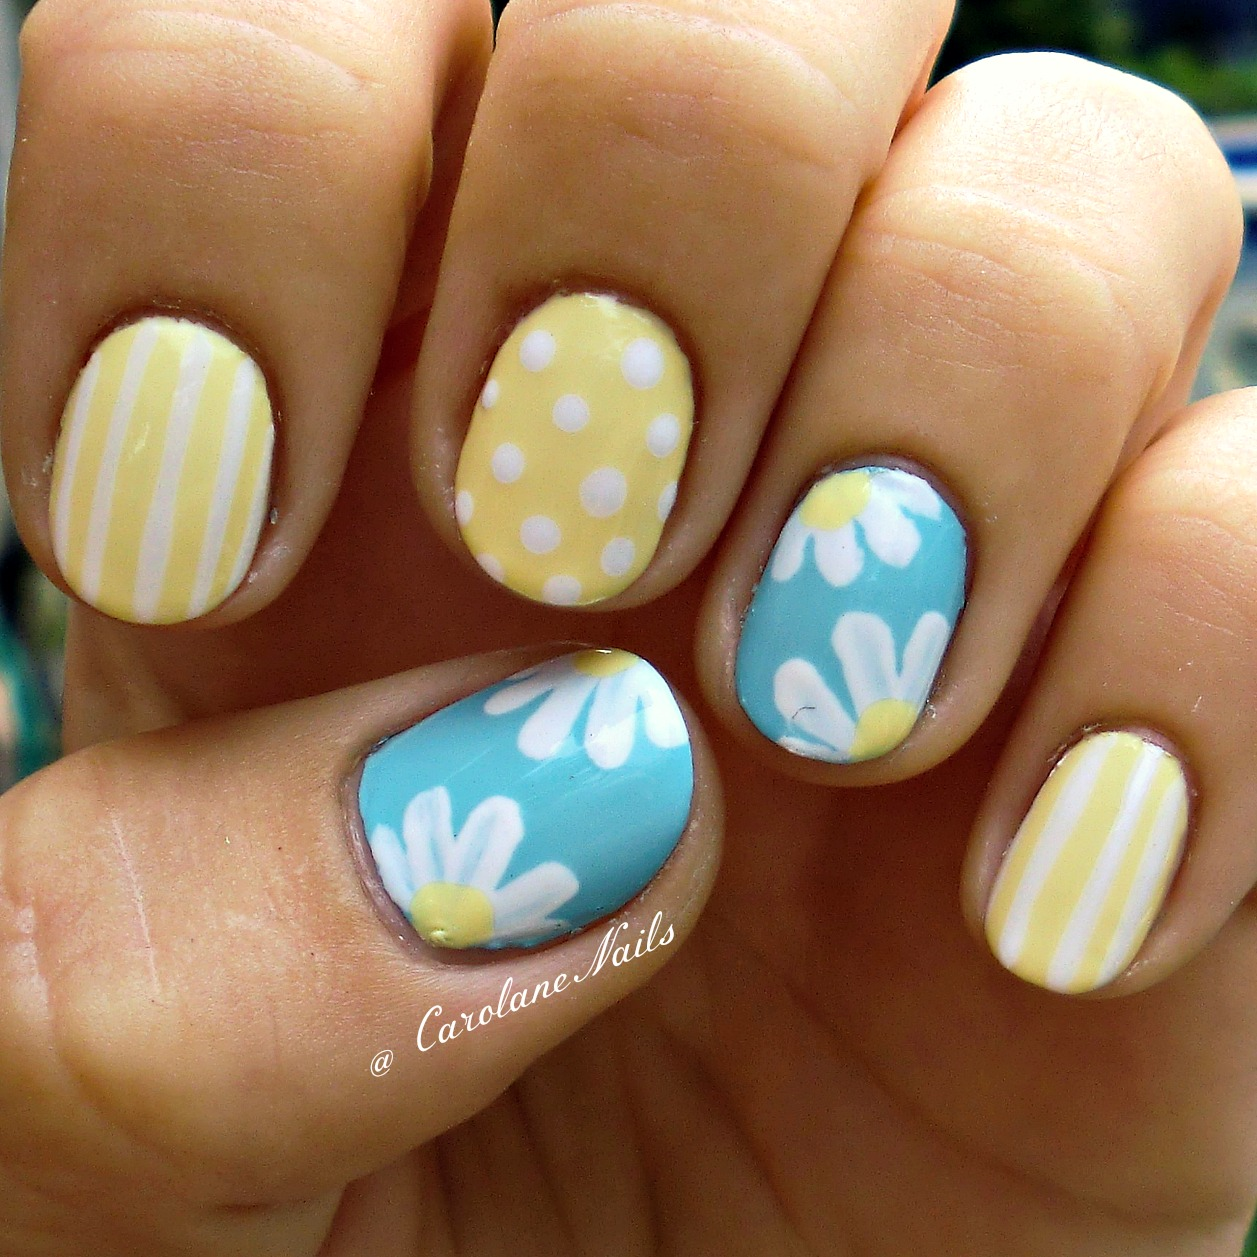 Nice Yellow Color With Poka Dots And A Nice Baby Blue With Flowers Daisy Nails Nails Cute Nails